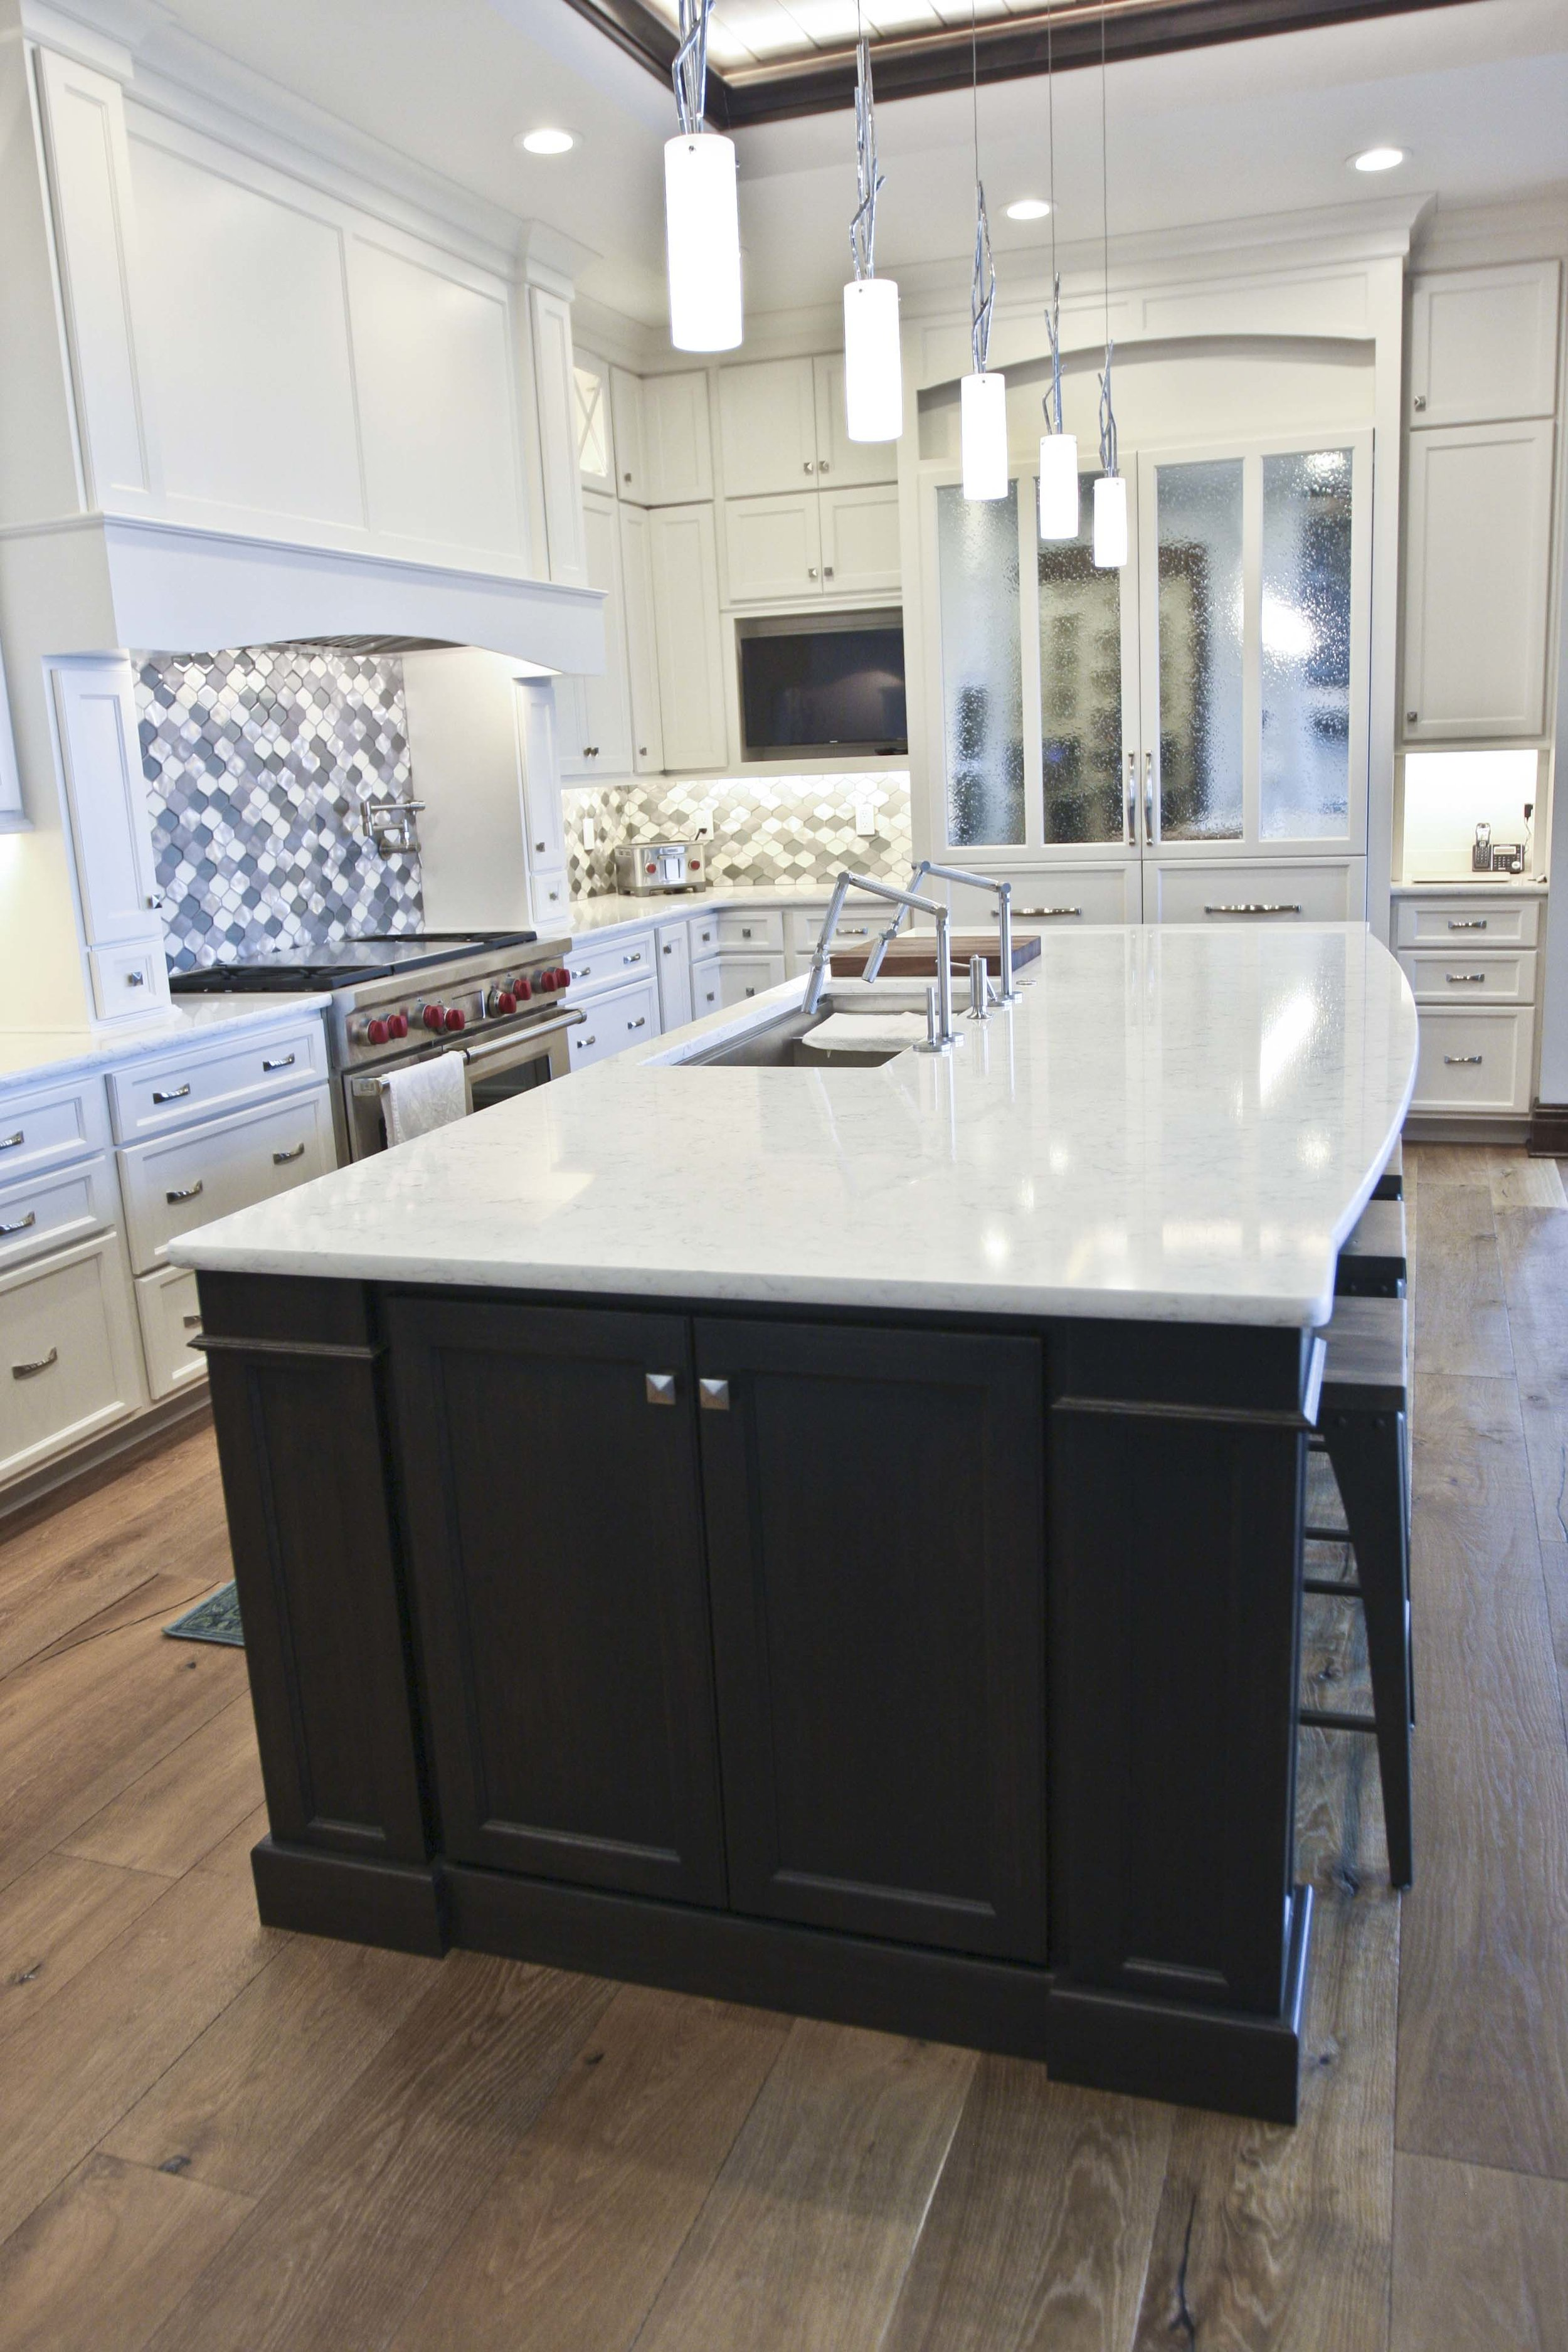 Quartz countertops throughout